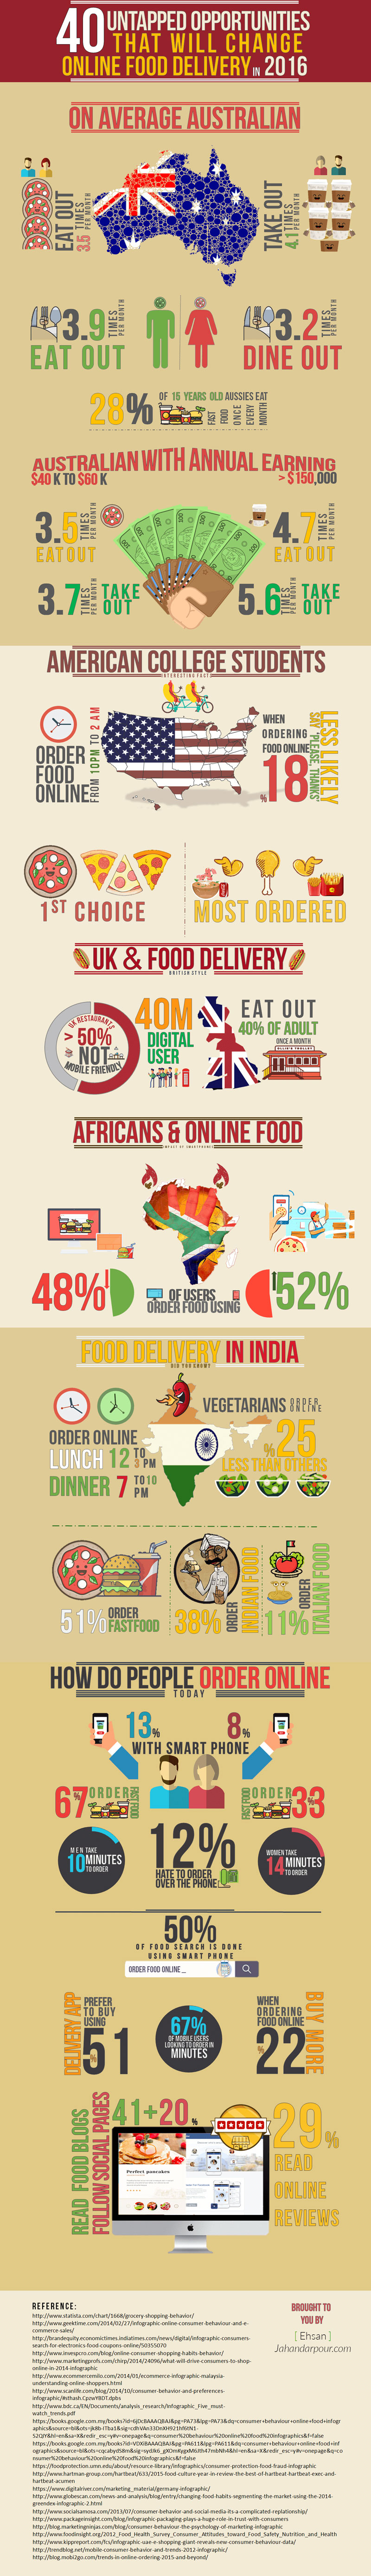 online-food-order-and-delivery-facts